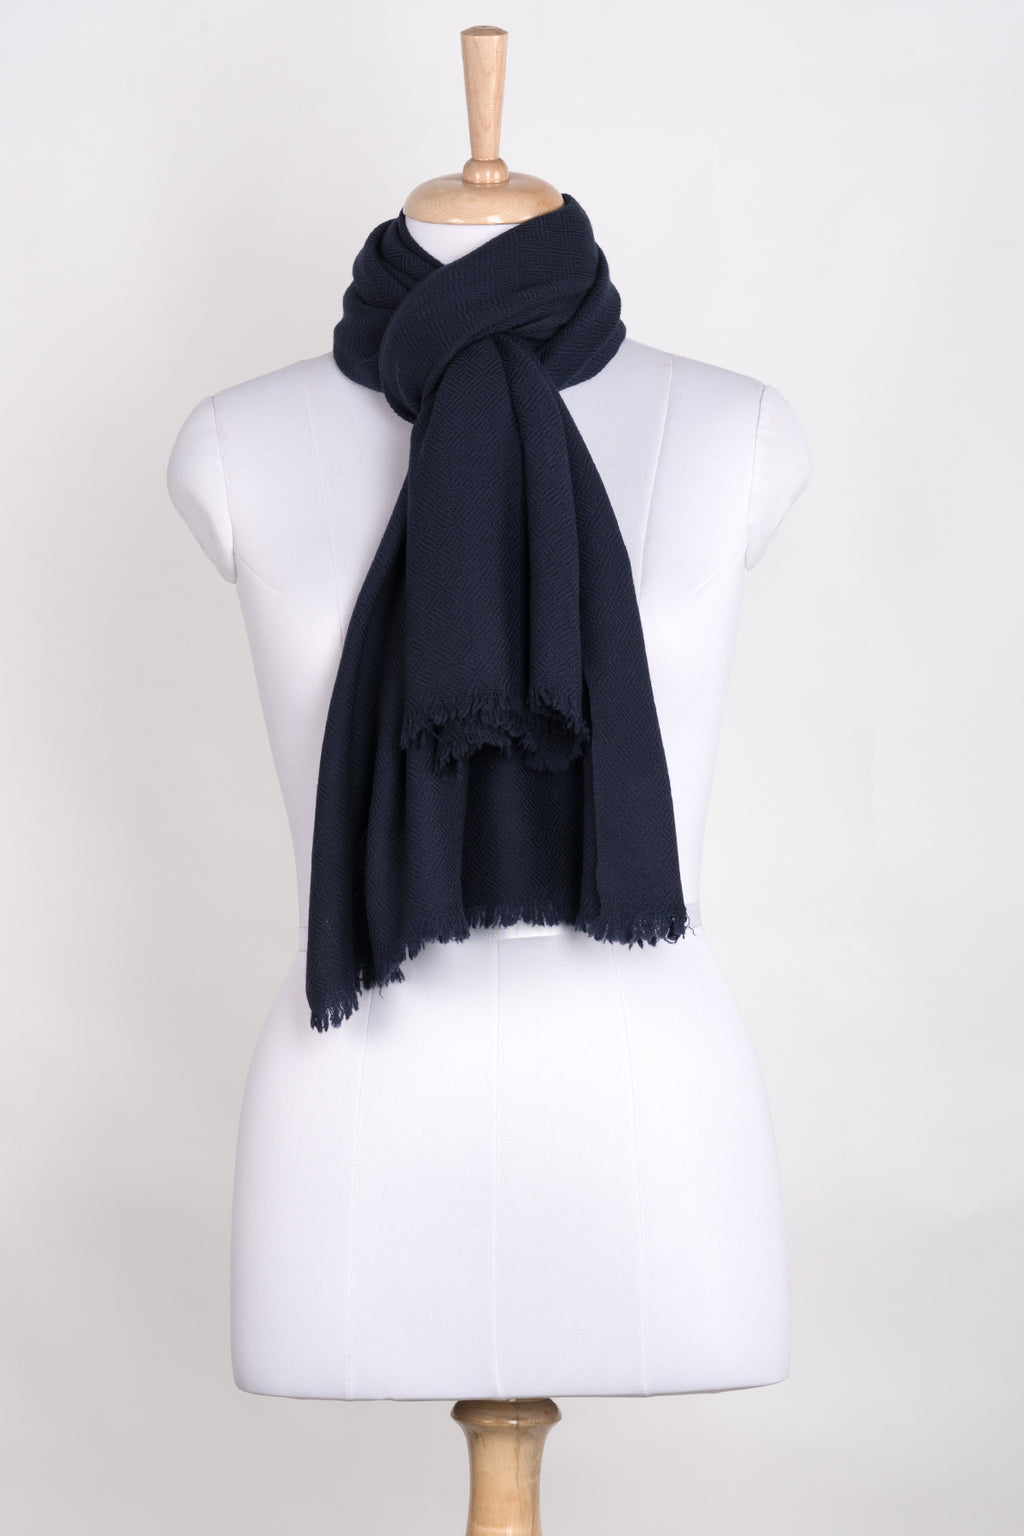 Diamond Weave Merino Wool Scarf - Navy